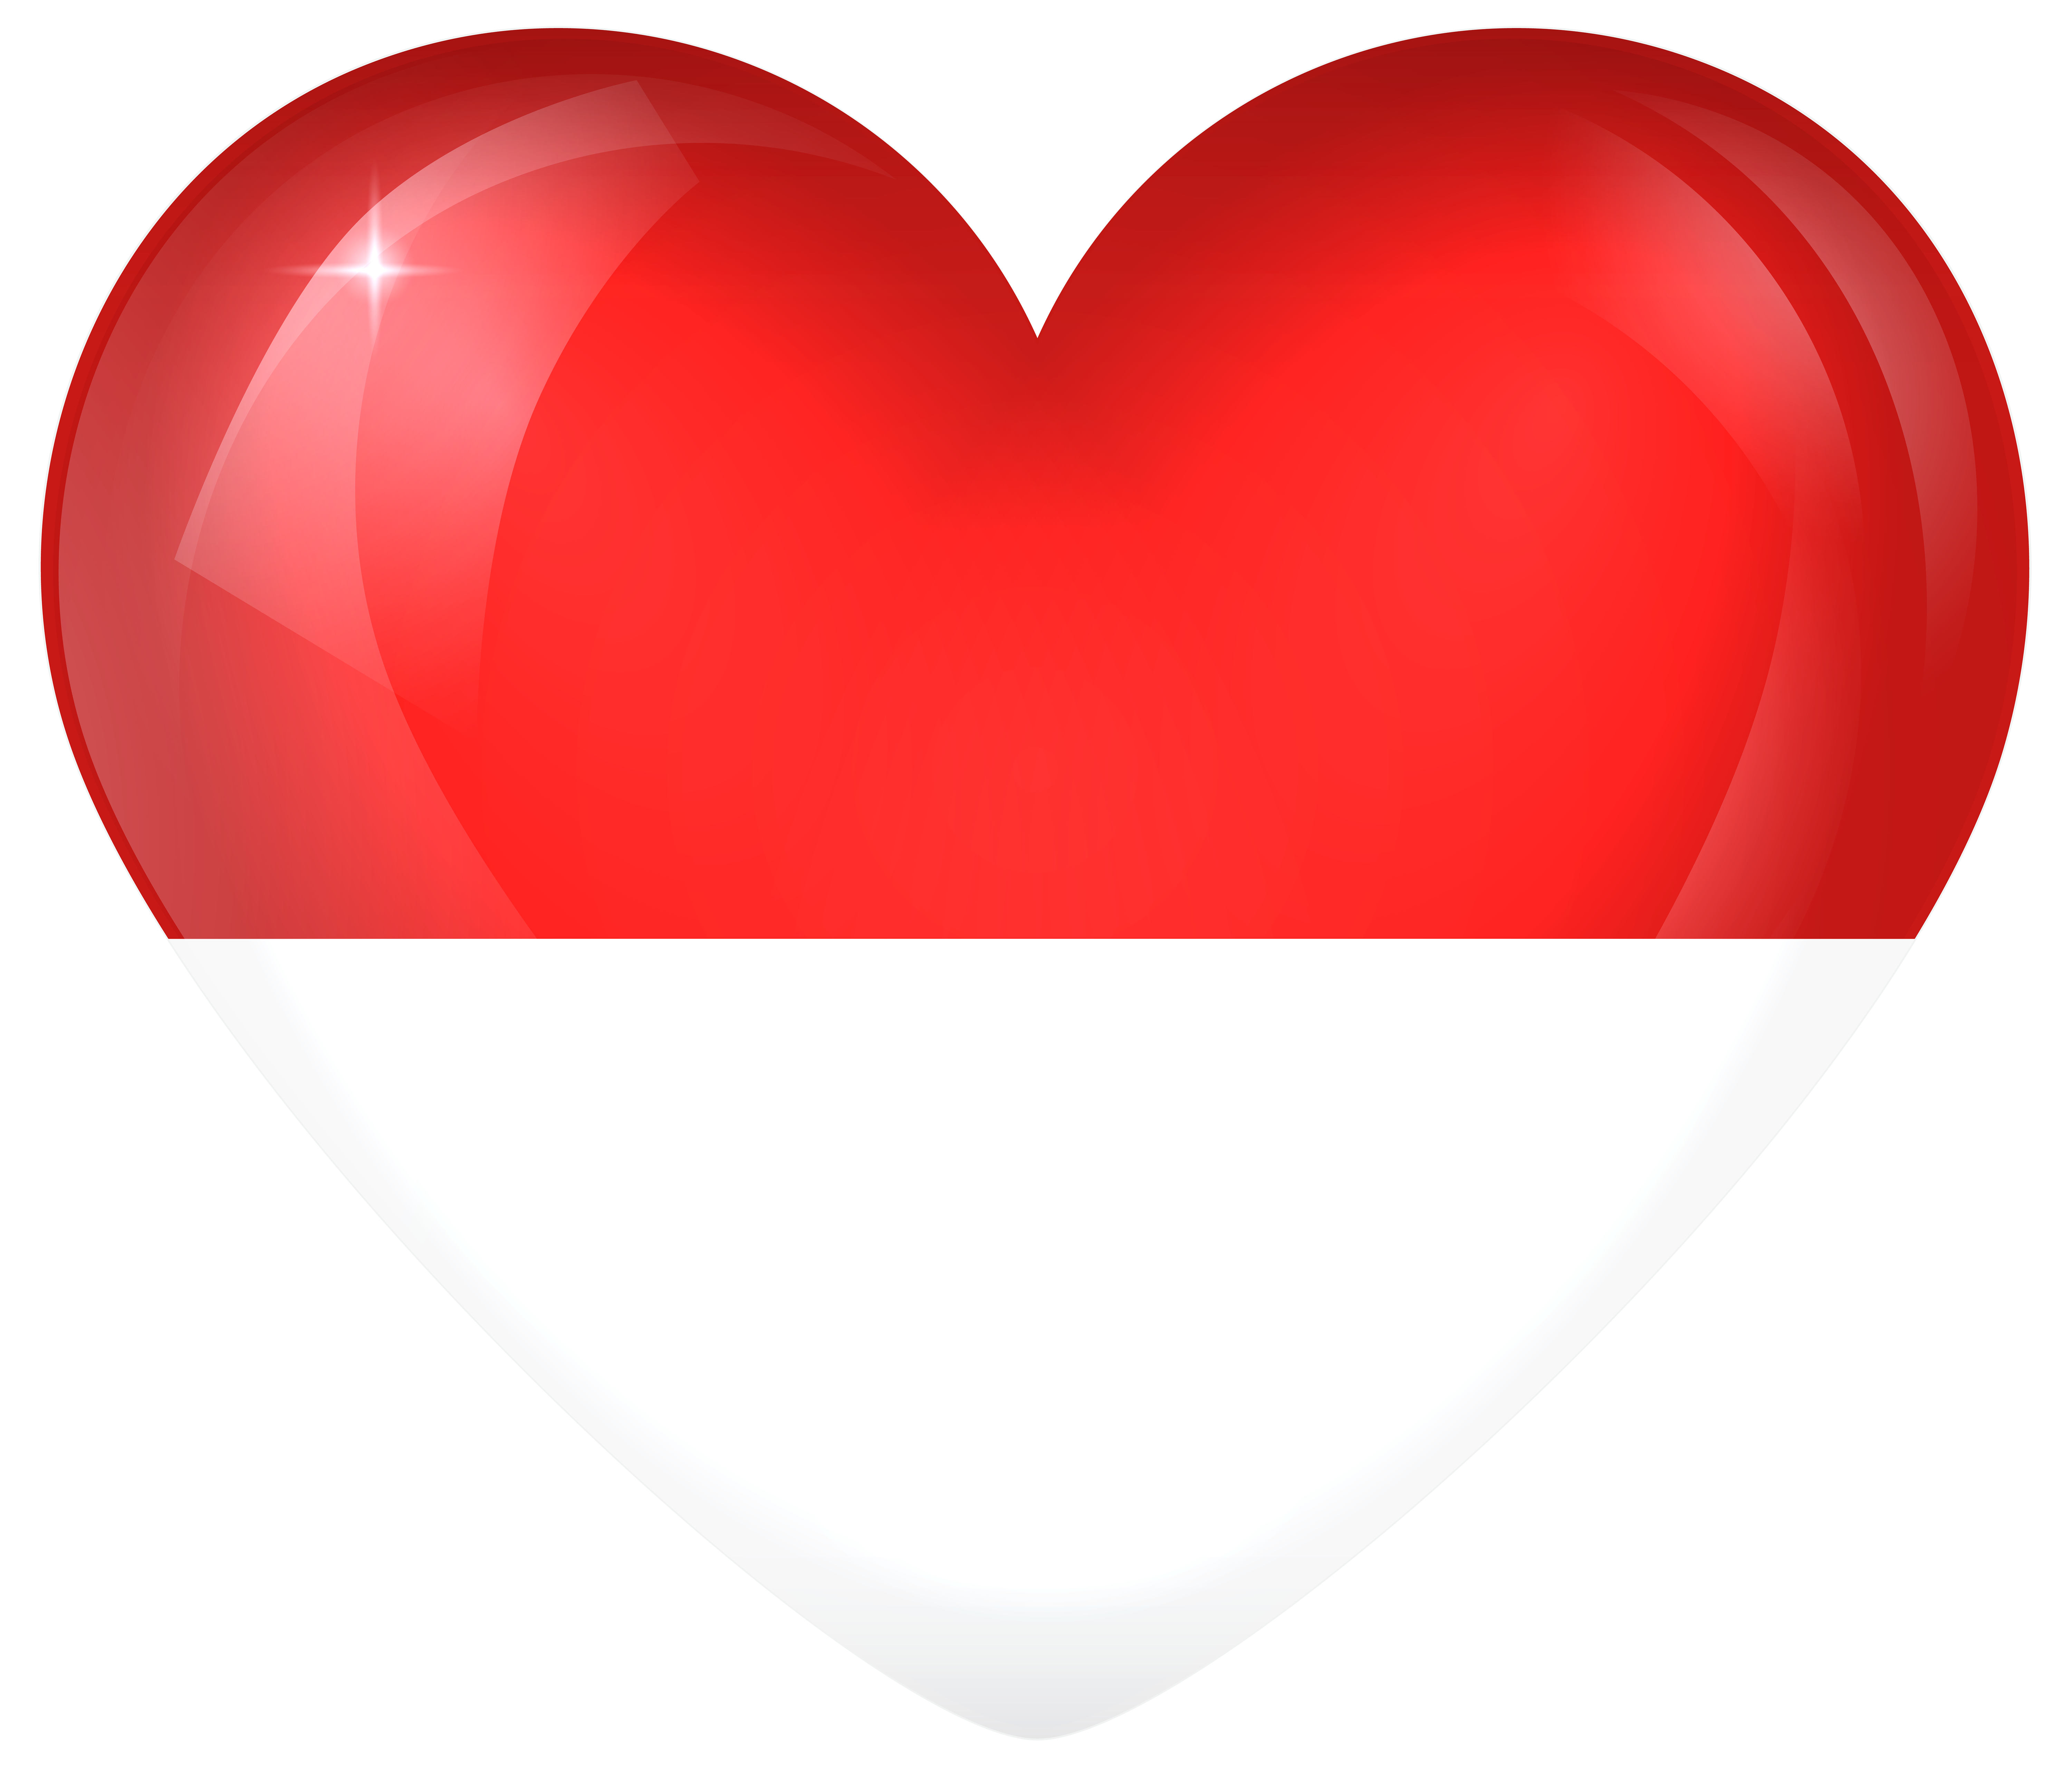 Heart banner clipart jpg free download Indonesia Large Heart Flag | Gallery Yopriceville - High-Quality ... jpg free download